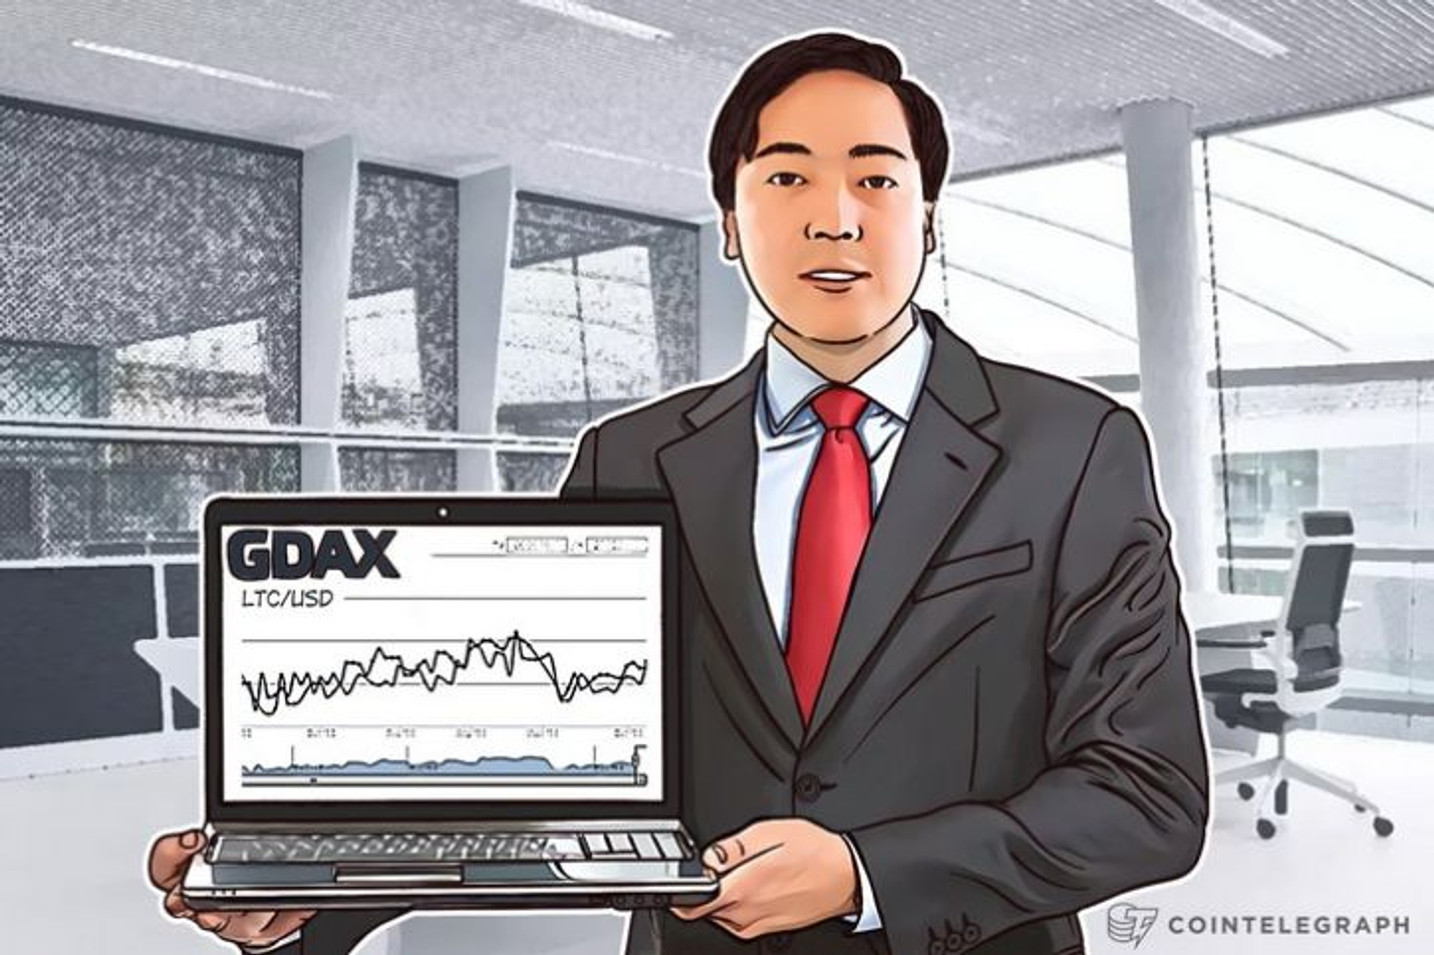 SegWit Hype Sees Litecoin Price Pass $10 For First Time Since 2014